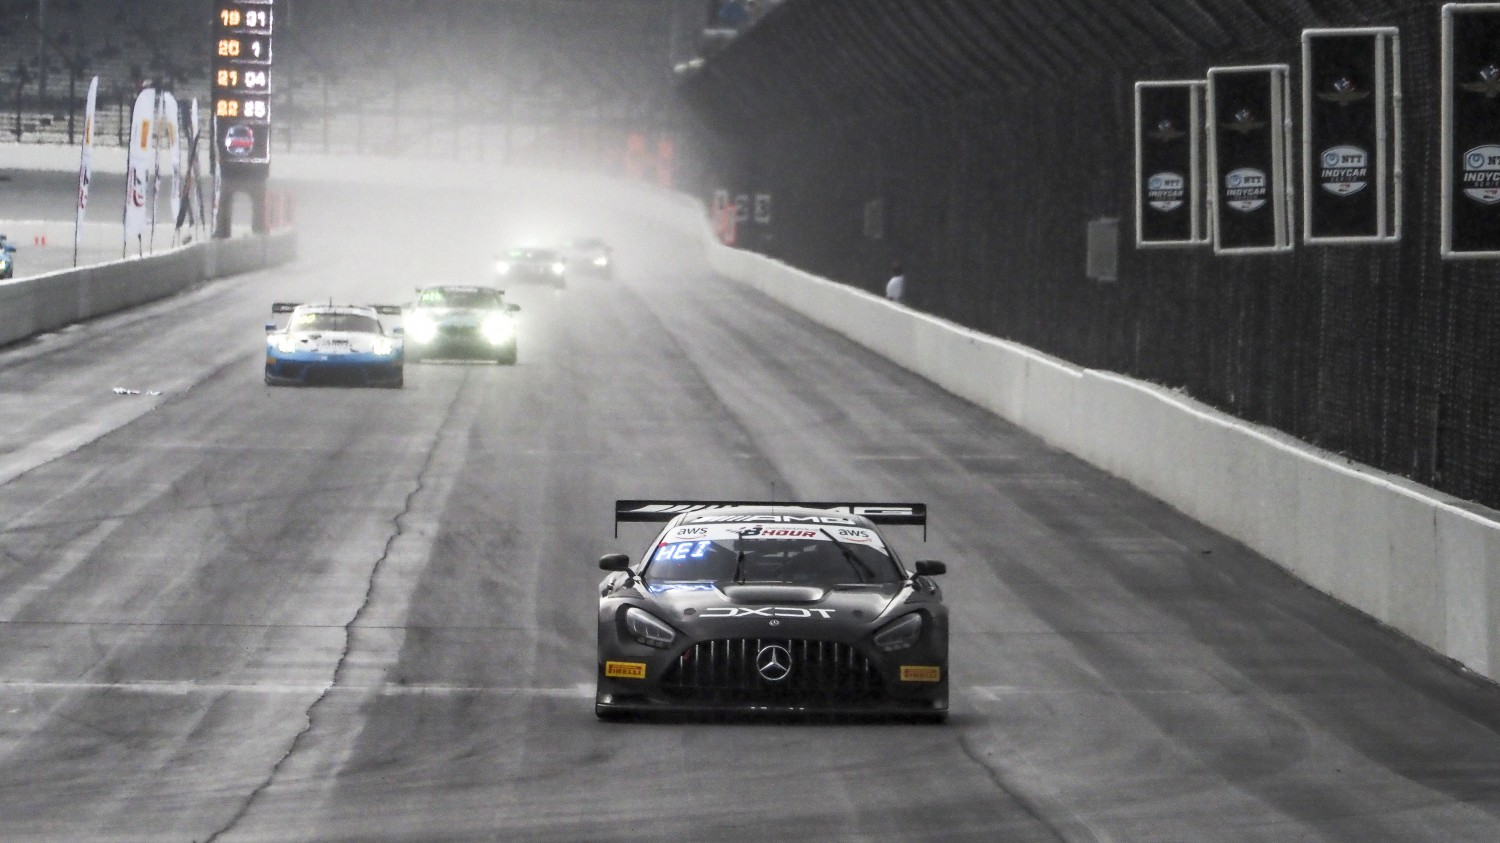 #63 Mercedes AMG GT3 of David Askew, Ryan Dalziel, and Ben Keating, DXDT Racing, GT3 Pro-Am, SRO, Indianapolis Motor Speedway, Indianapolis, IN, September 2020.  | Brian Cleary/SRO